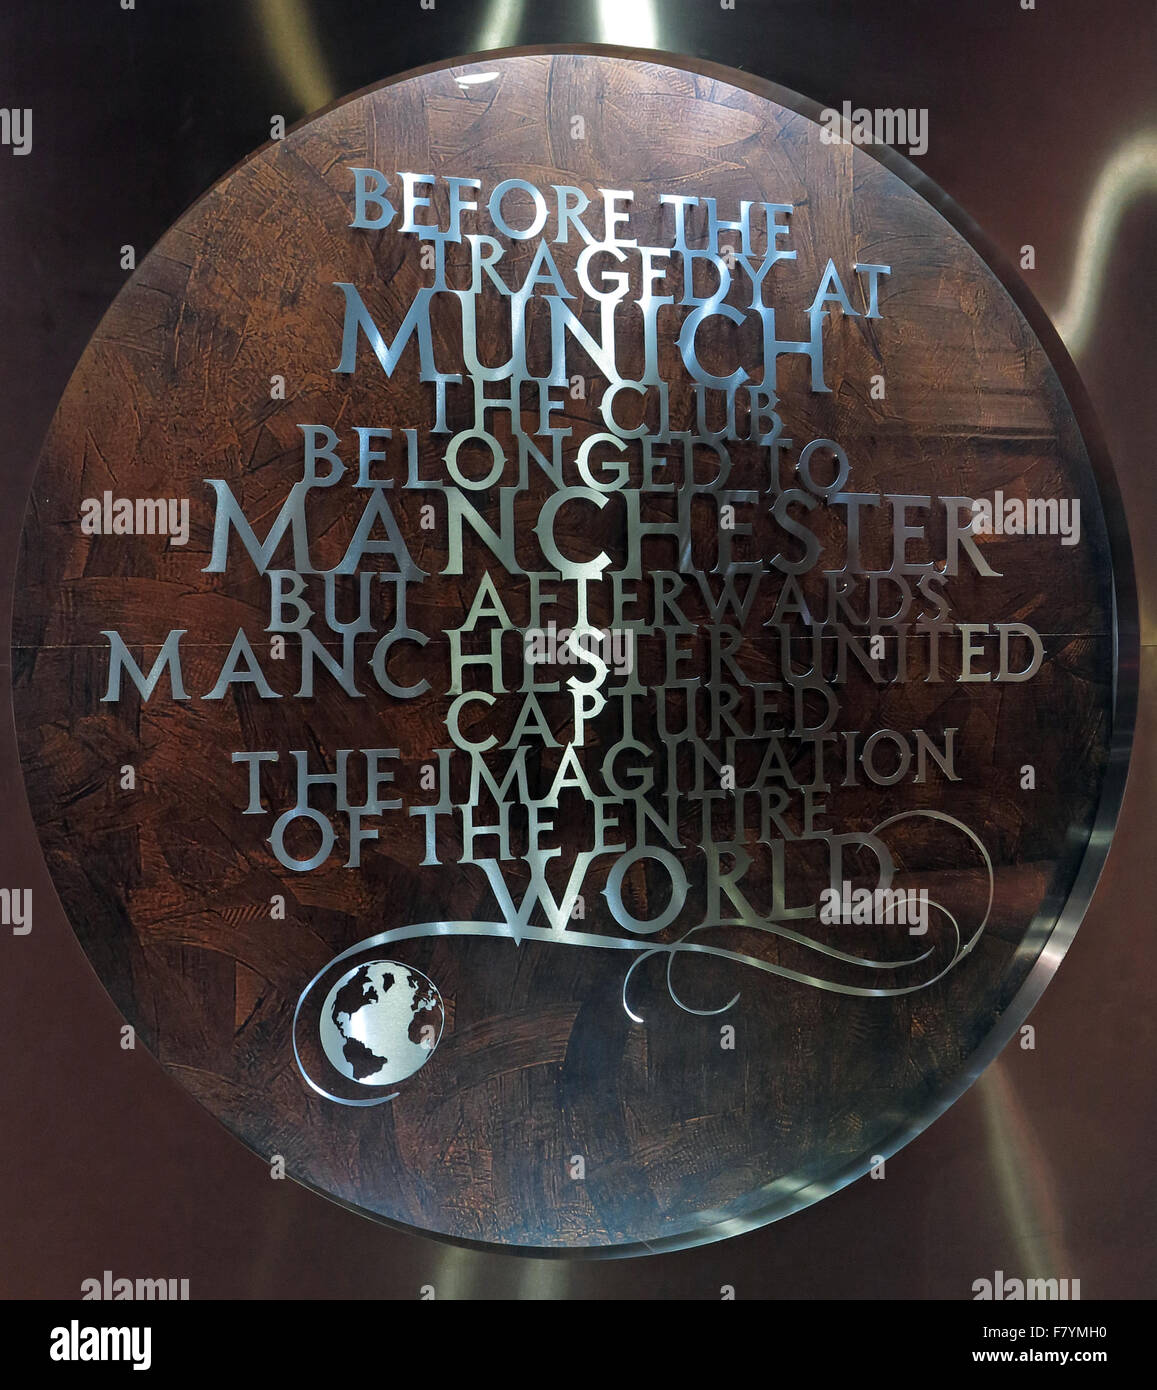 remember,Manchester United,England,UK,Before,the,Tragedy,at,Munich,the,club,belonged,to,Manchester,Munich memorial,GoTonySmith,ManchesterUnited,MUFC,Mancester,MU,old,Trafford,theatre,of,dreams,Lancs,Lancashire,RedDevils,Red,Devils,Football,Club,FC,allseater,all-seater,association,away,balls,betting,britain,british,champions,changing,coaches,competition,culture,cups,division,documentary,dressing,england,english,fans,fixtures,game,goals,ground,heritage,history,home,homesoffootball,hooliganism,justice,kick,kick-off,league,managers,midweek,pitch,players,police,premier,promotion,referees,regulations,relegation,results,room,roots,rules,saturday,saturdays,scorers,season,seated,seater,seating,shinpads,shirt,shirts,sizes,sky,skysports,soccer,social,socks,sponsors,sport,stadia,stadium,standing,sundays,sunday,system,tables,team,terraces,tradition,trainers,Adidas,Puma,Buy Pictures of,Buy Images Of,Old Trafford,Theatre of Dreams,Theater of dreams,Red Devils